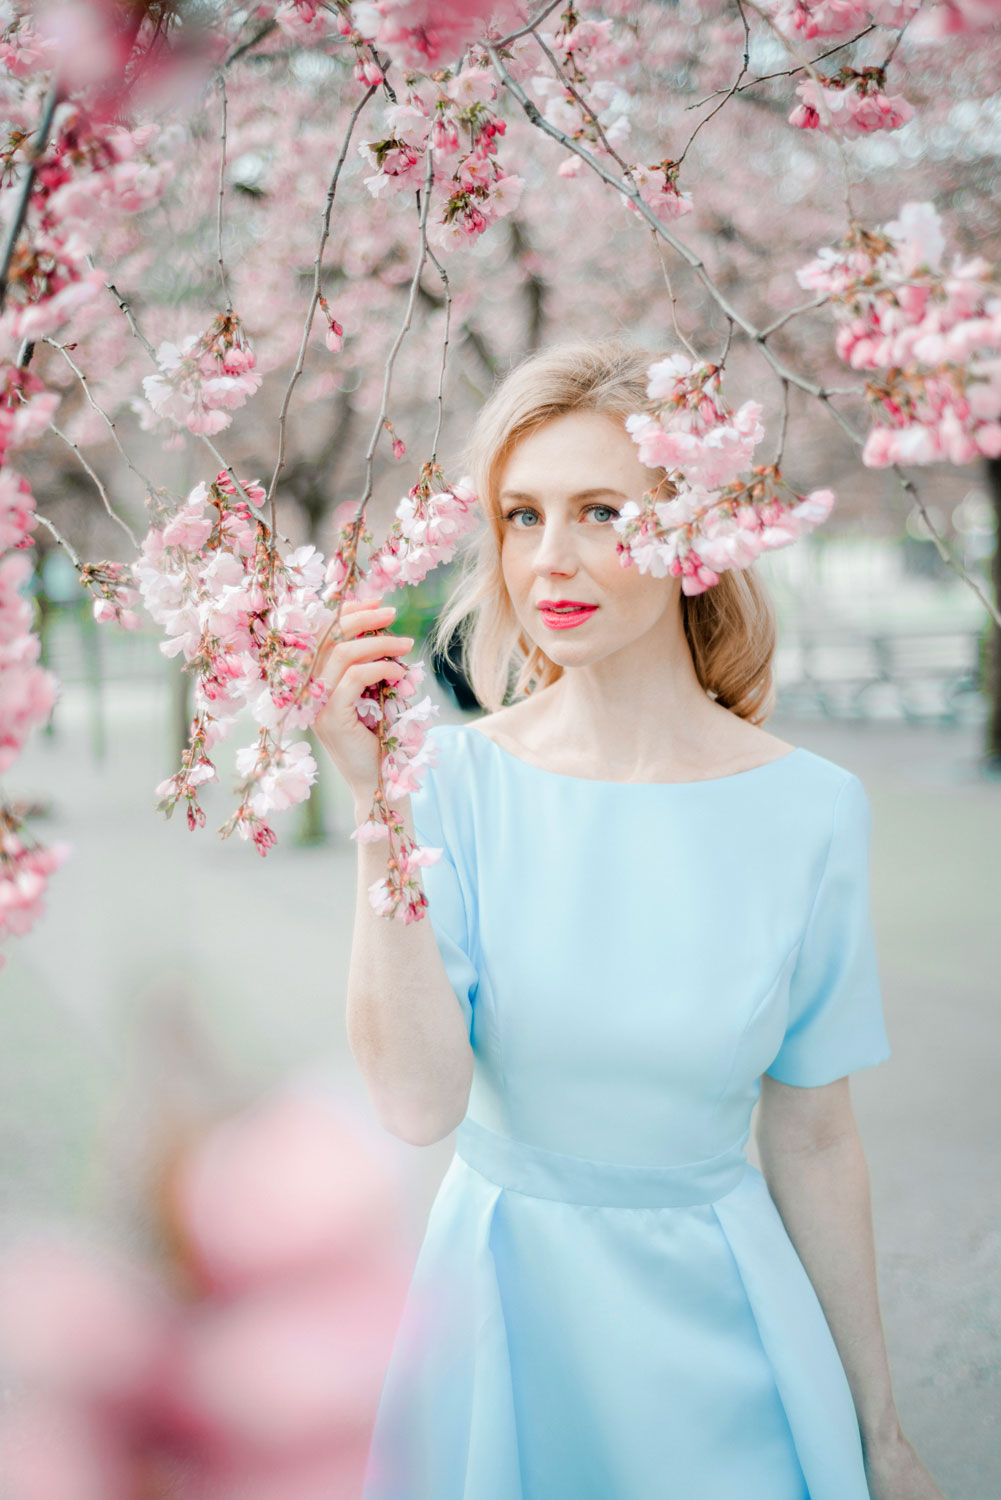 Portrait Photo Session in Cherry Blossom